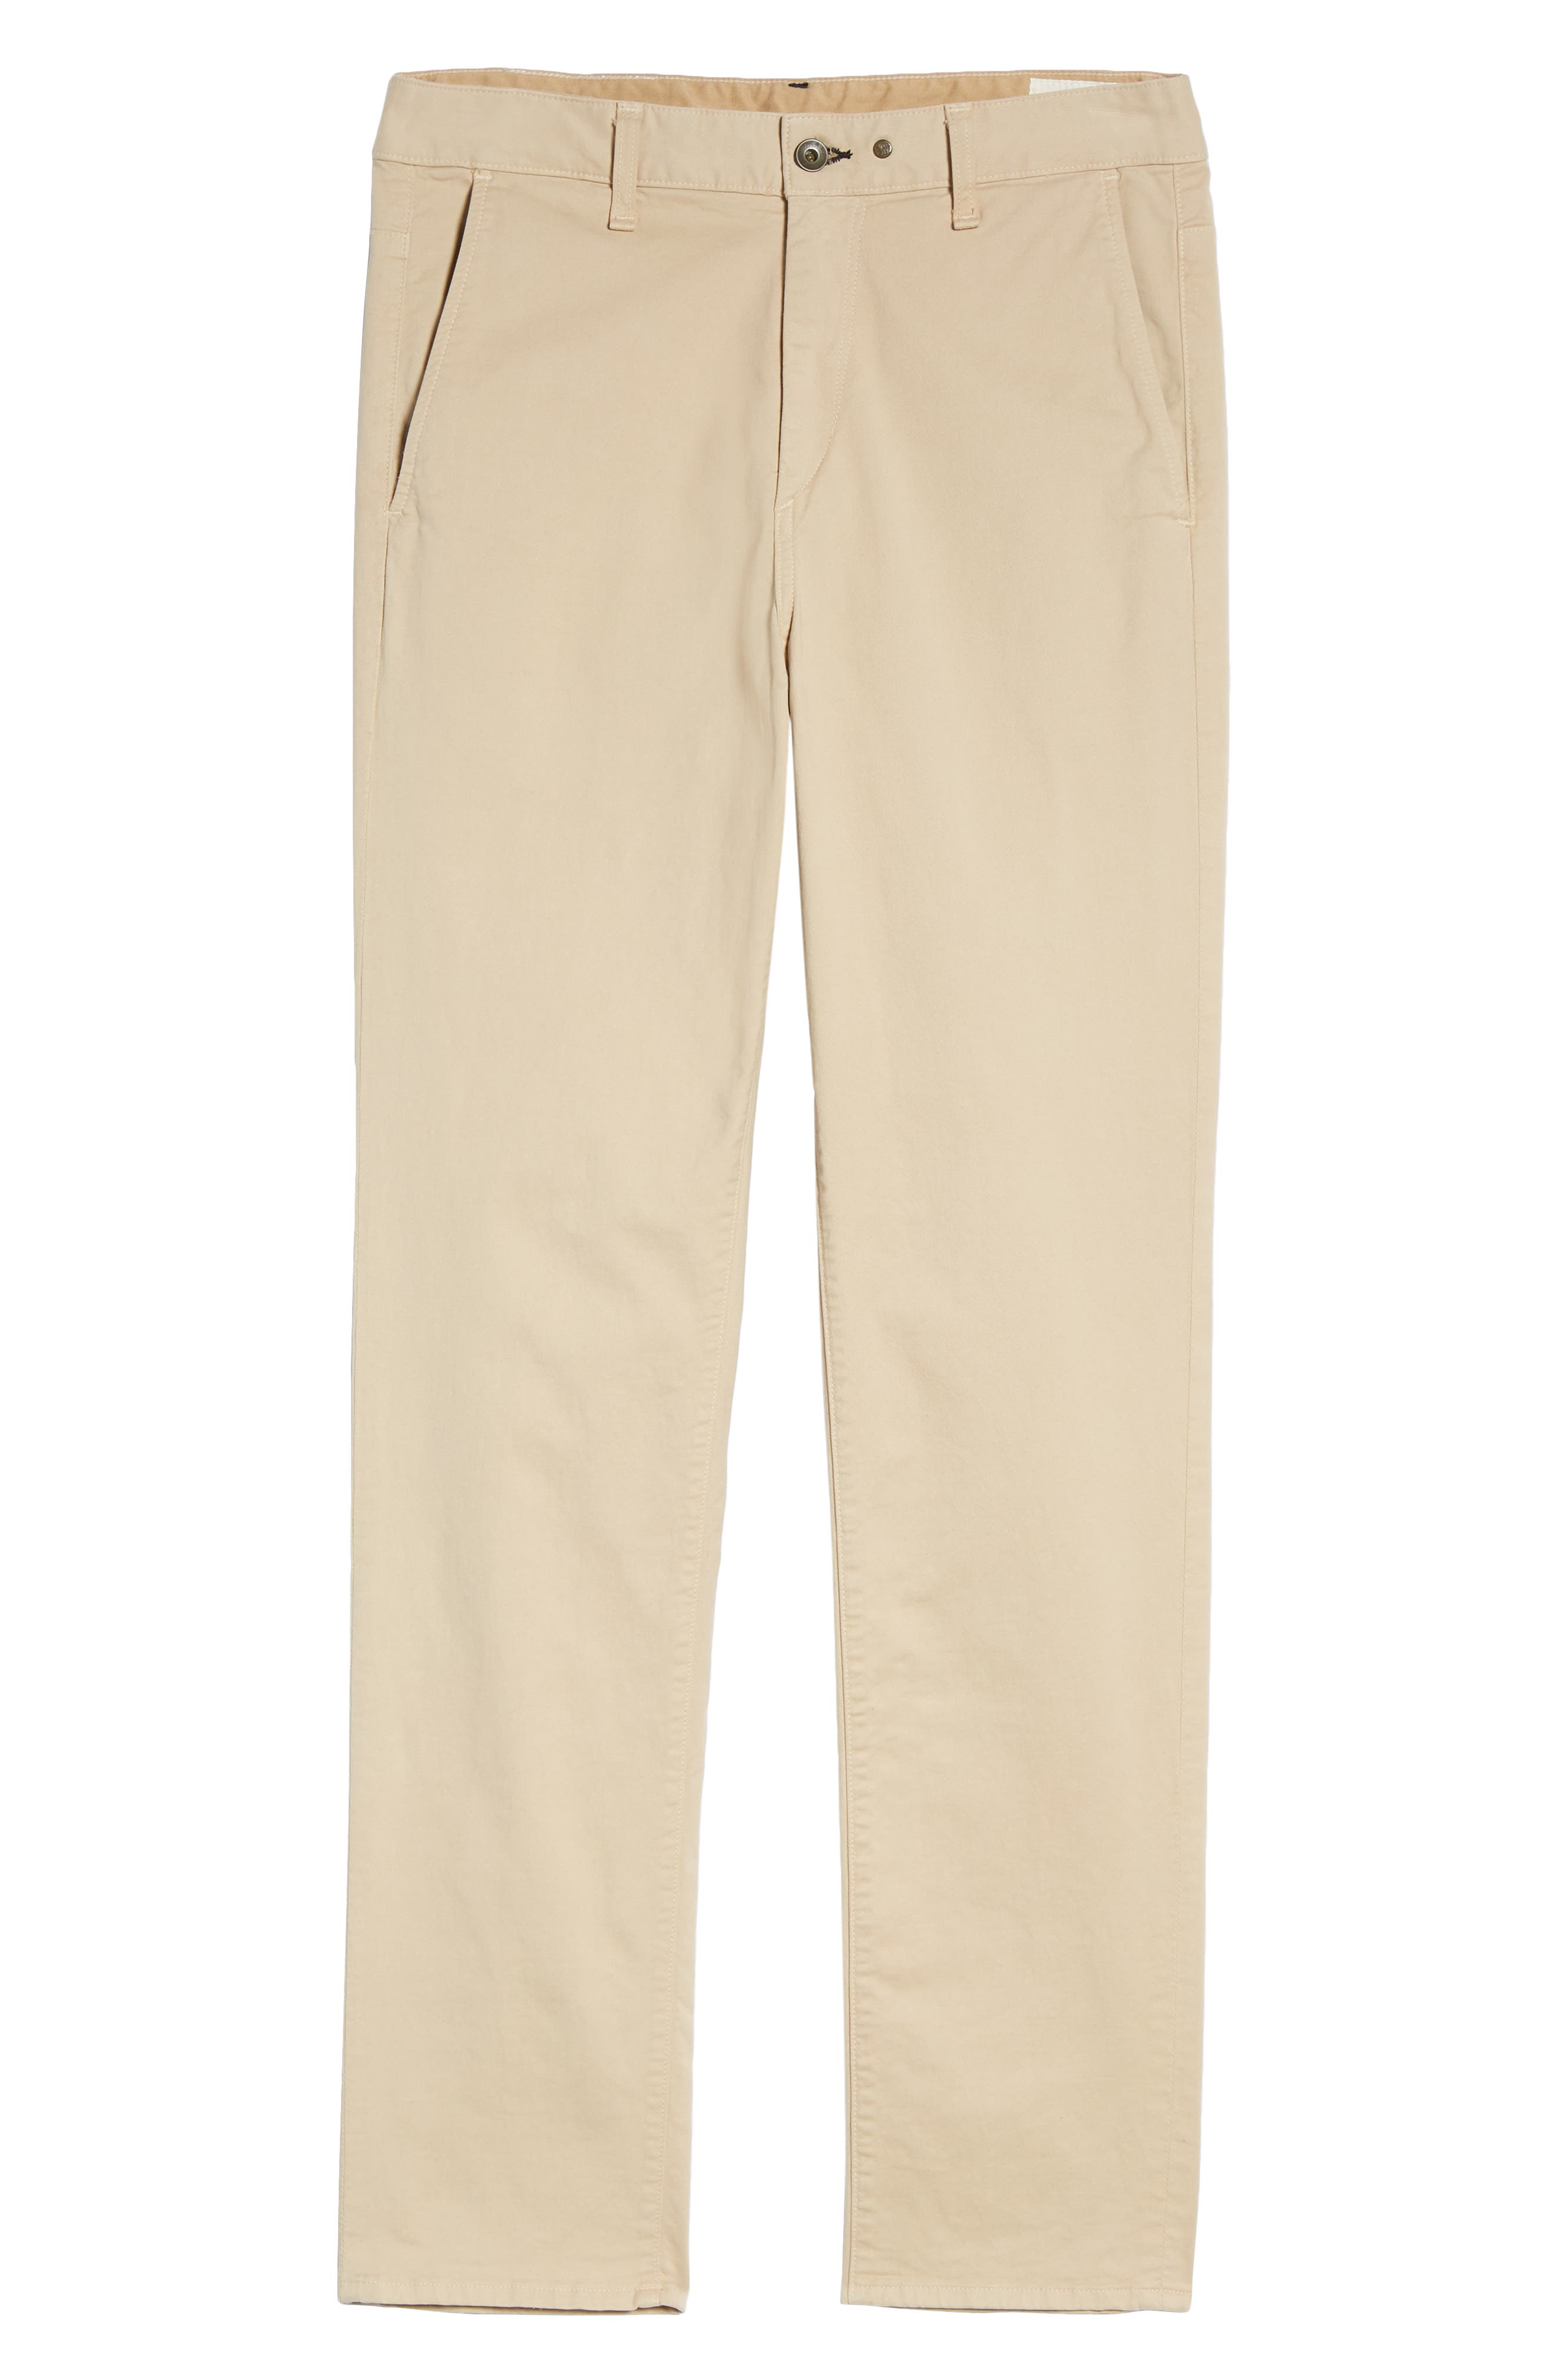 Fit 3 Classic Chino,                             Alternate thumbnail 6, color,                             BEIGE